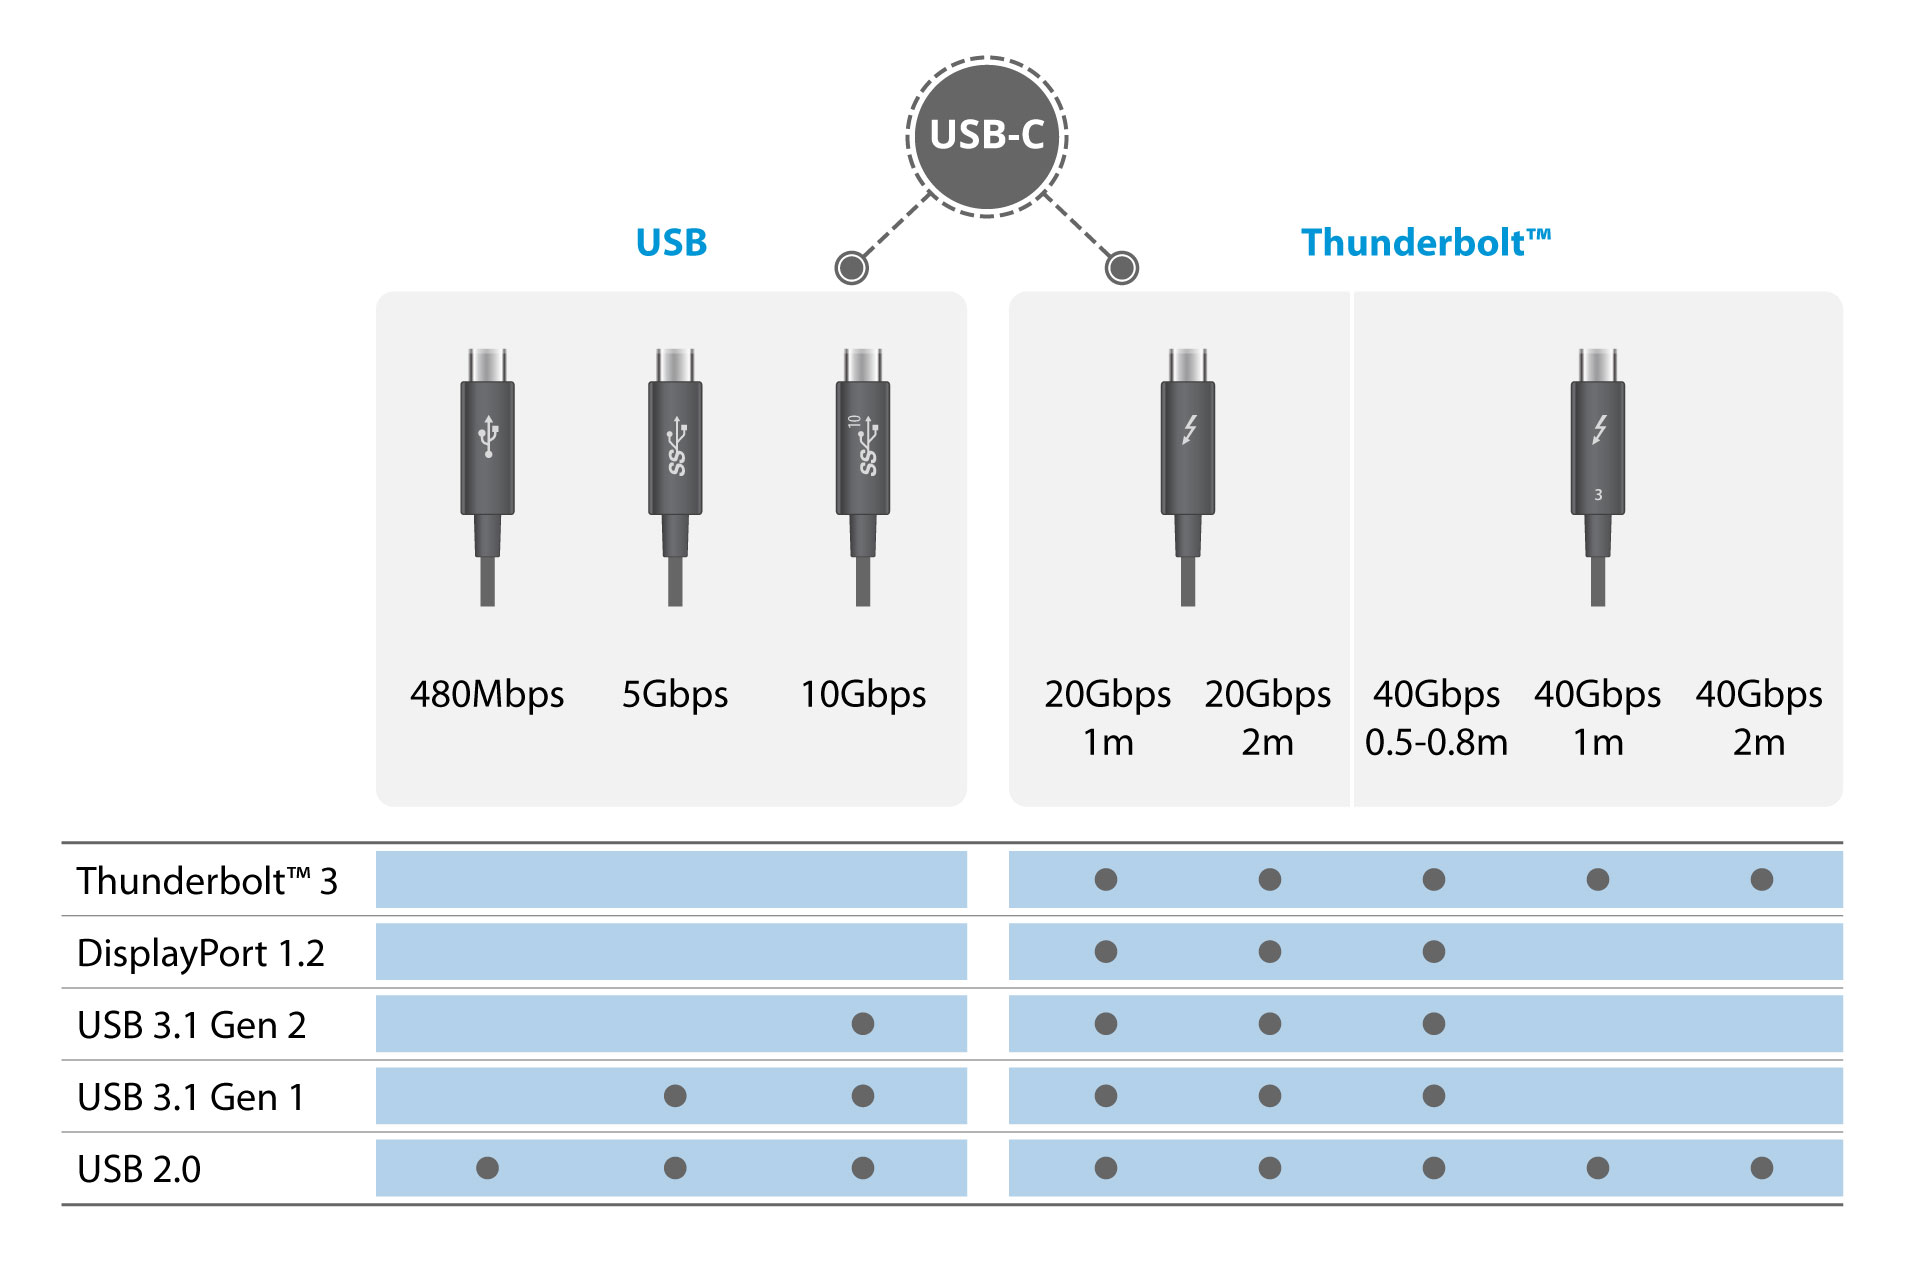 thunderbolt3 vs usb c